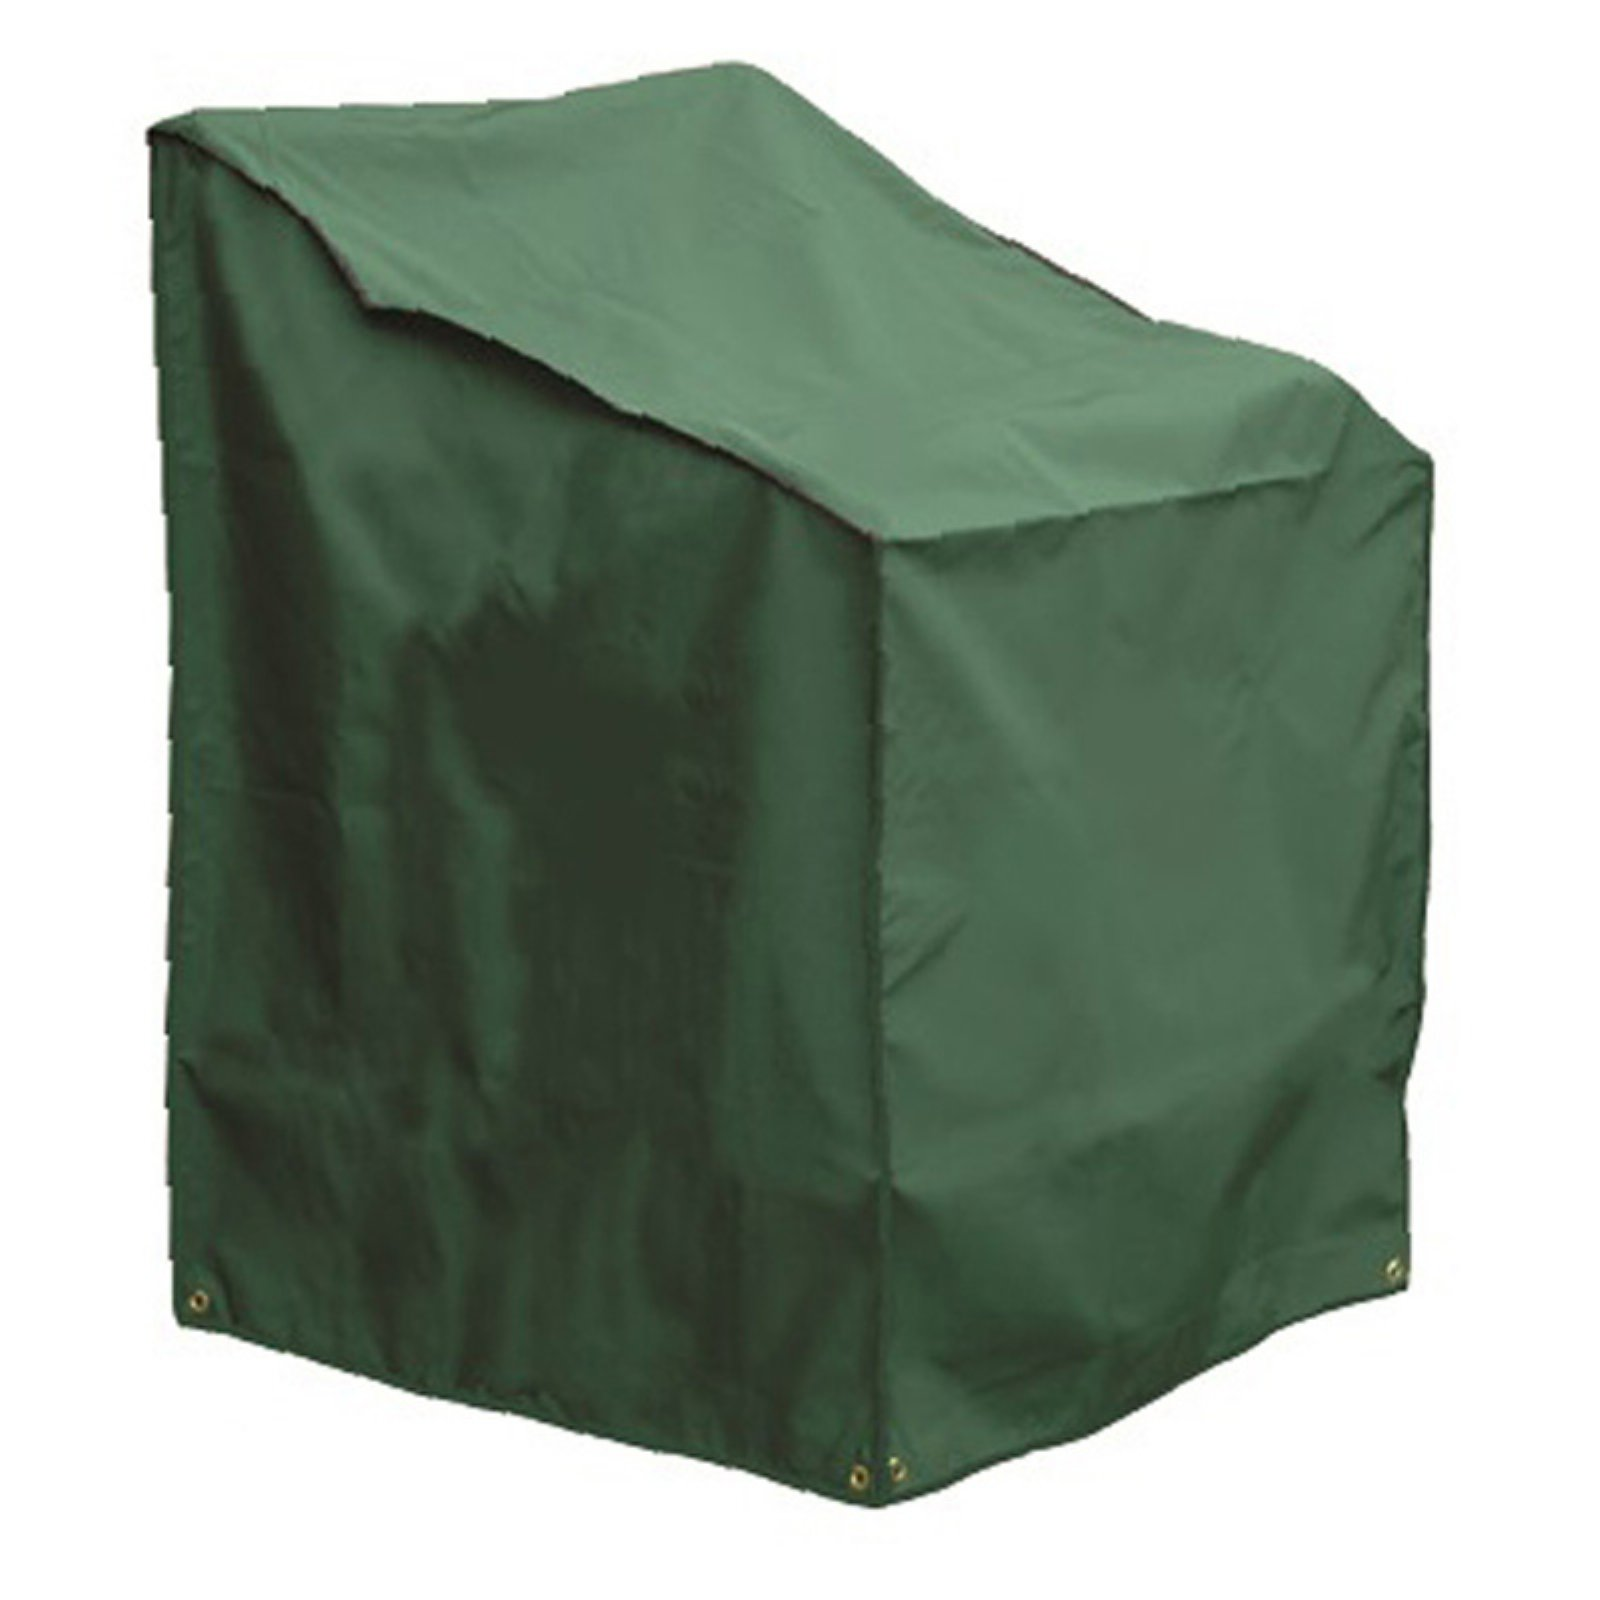 Bosmere 26W x 28D x 29H in. Outdoor Chair Cover